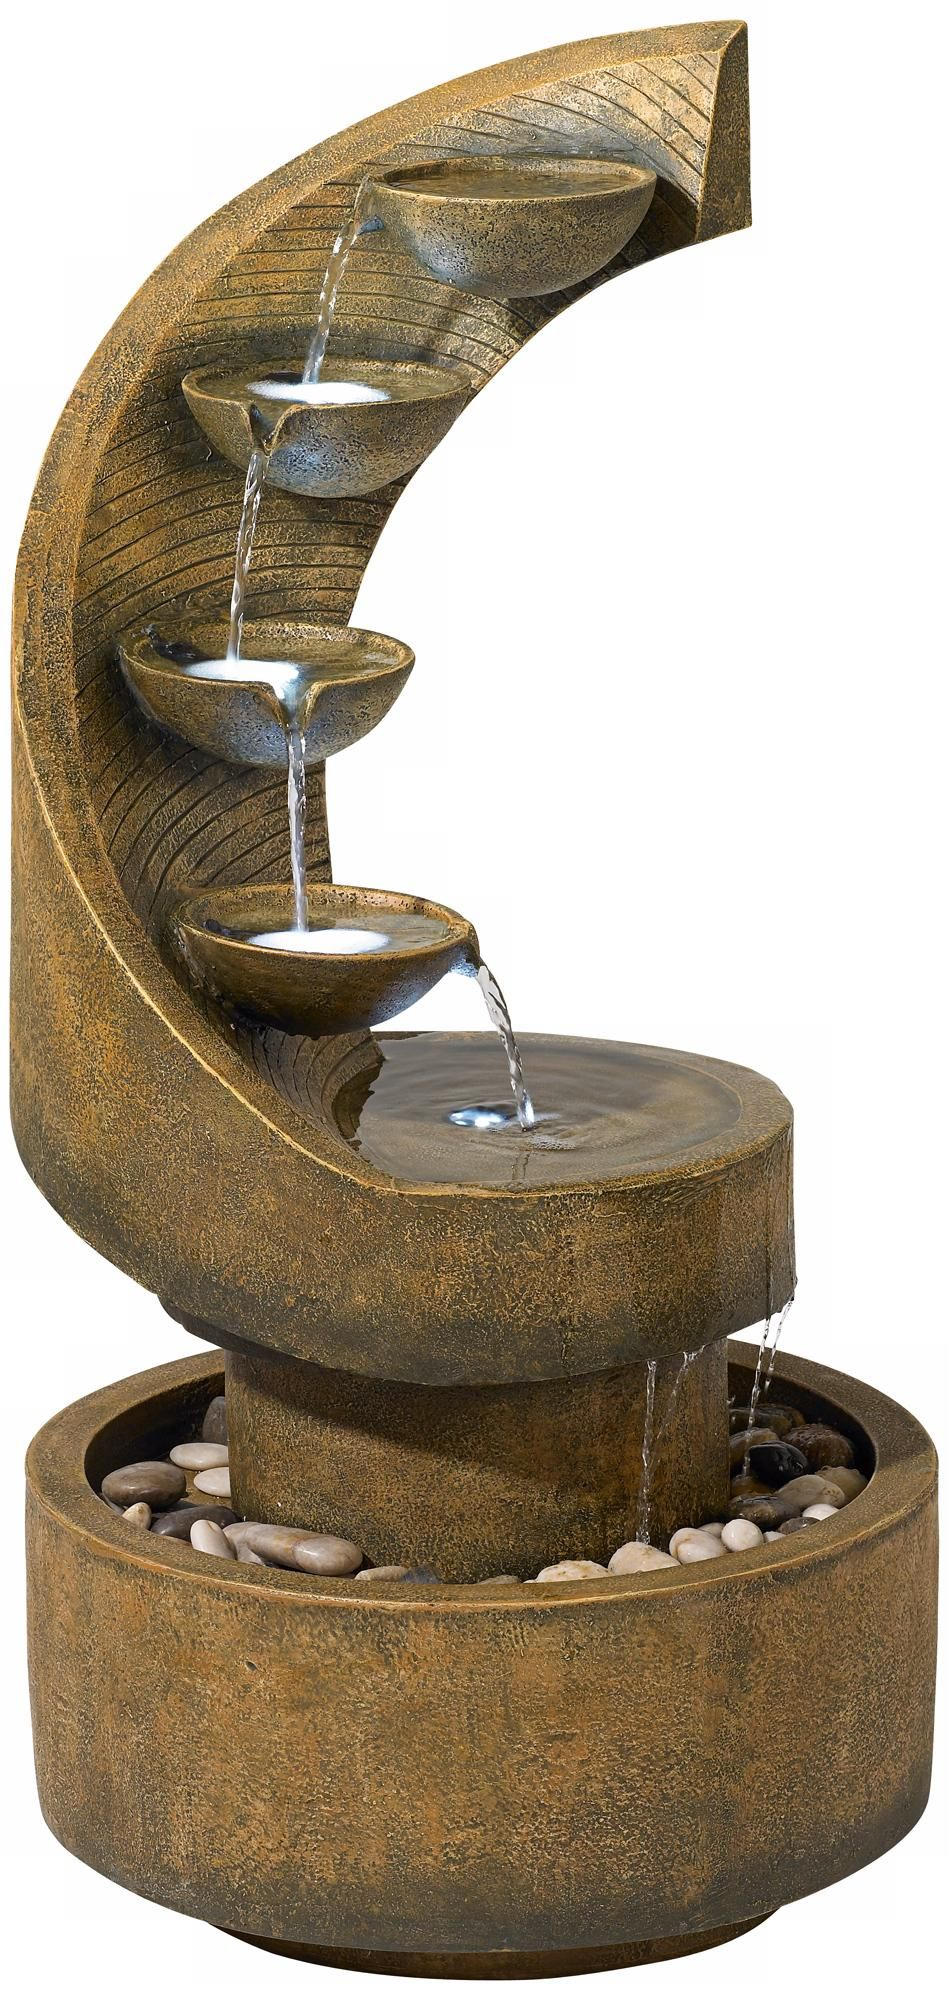 Cascading 39 1 2 High Modern Zen Fountain With Led Lights R5942 Lamps Plus In 2020 Tabletop Water Fountain Tabletop Fountain Fountains